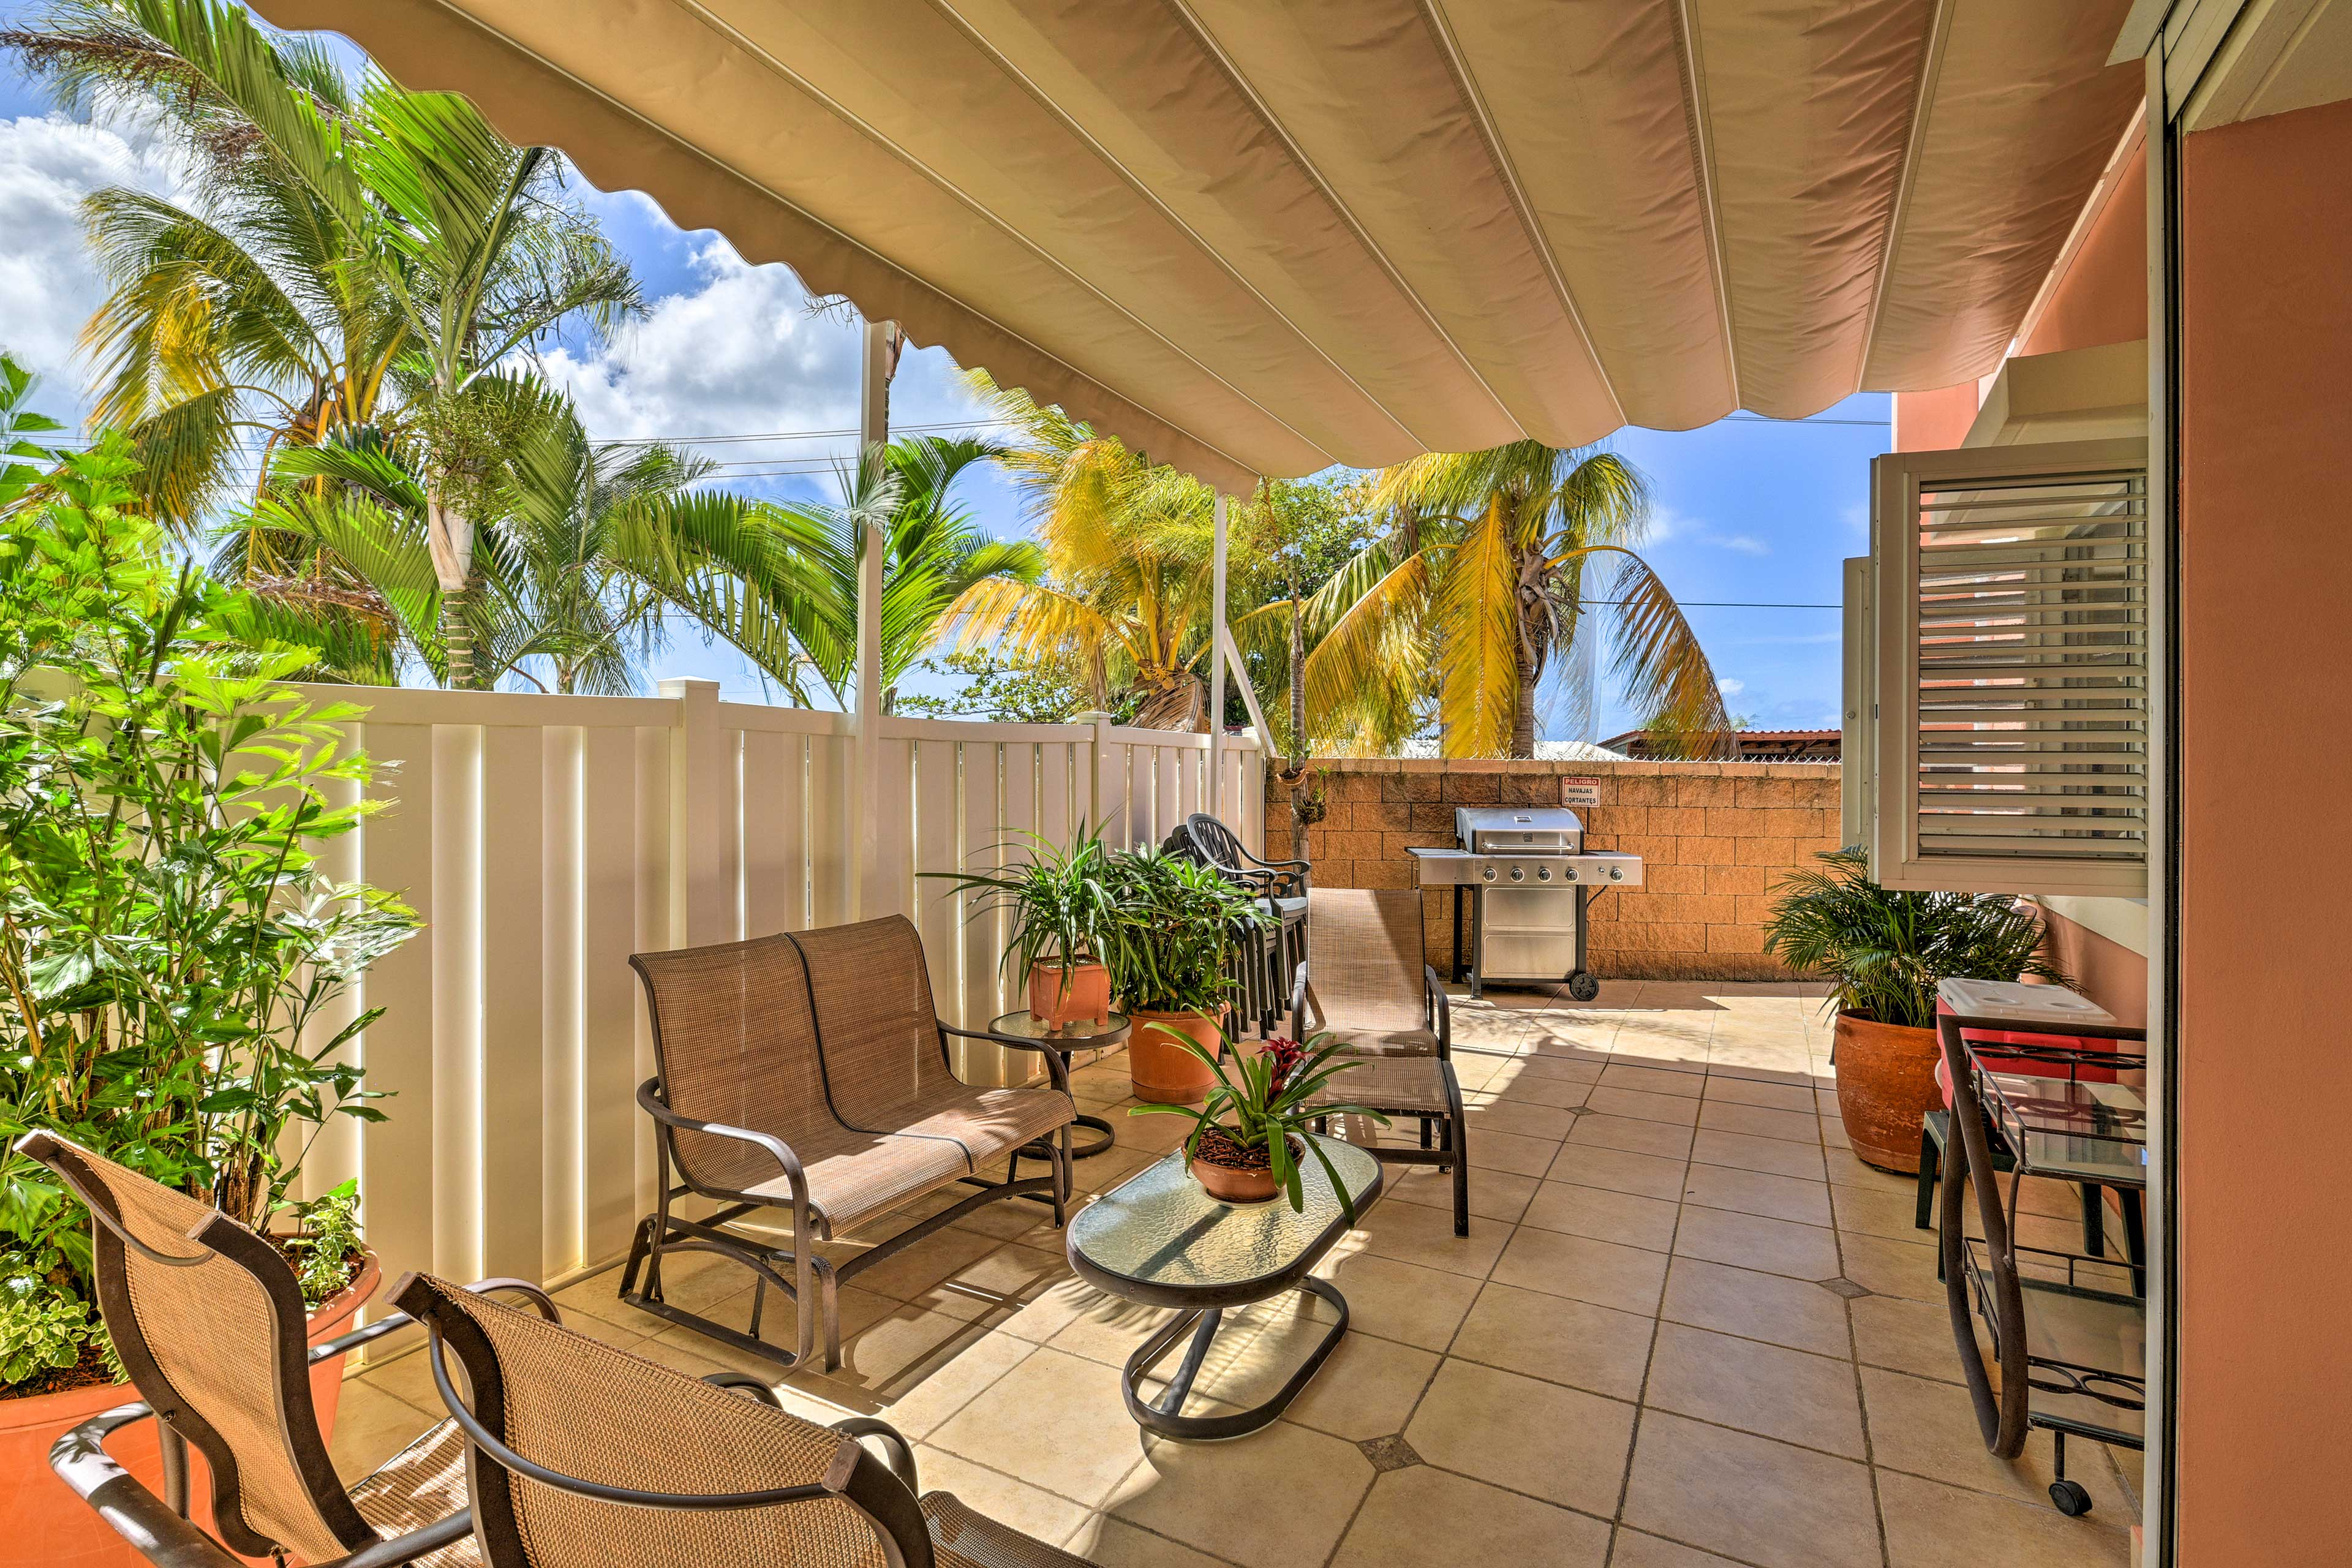 With a gas grill and ample seating, you'll love spending time here.